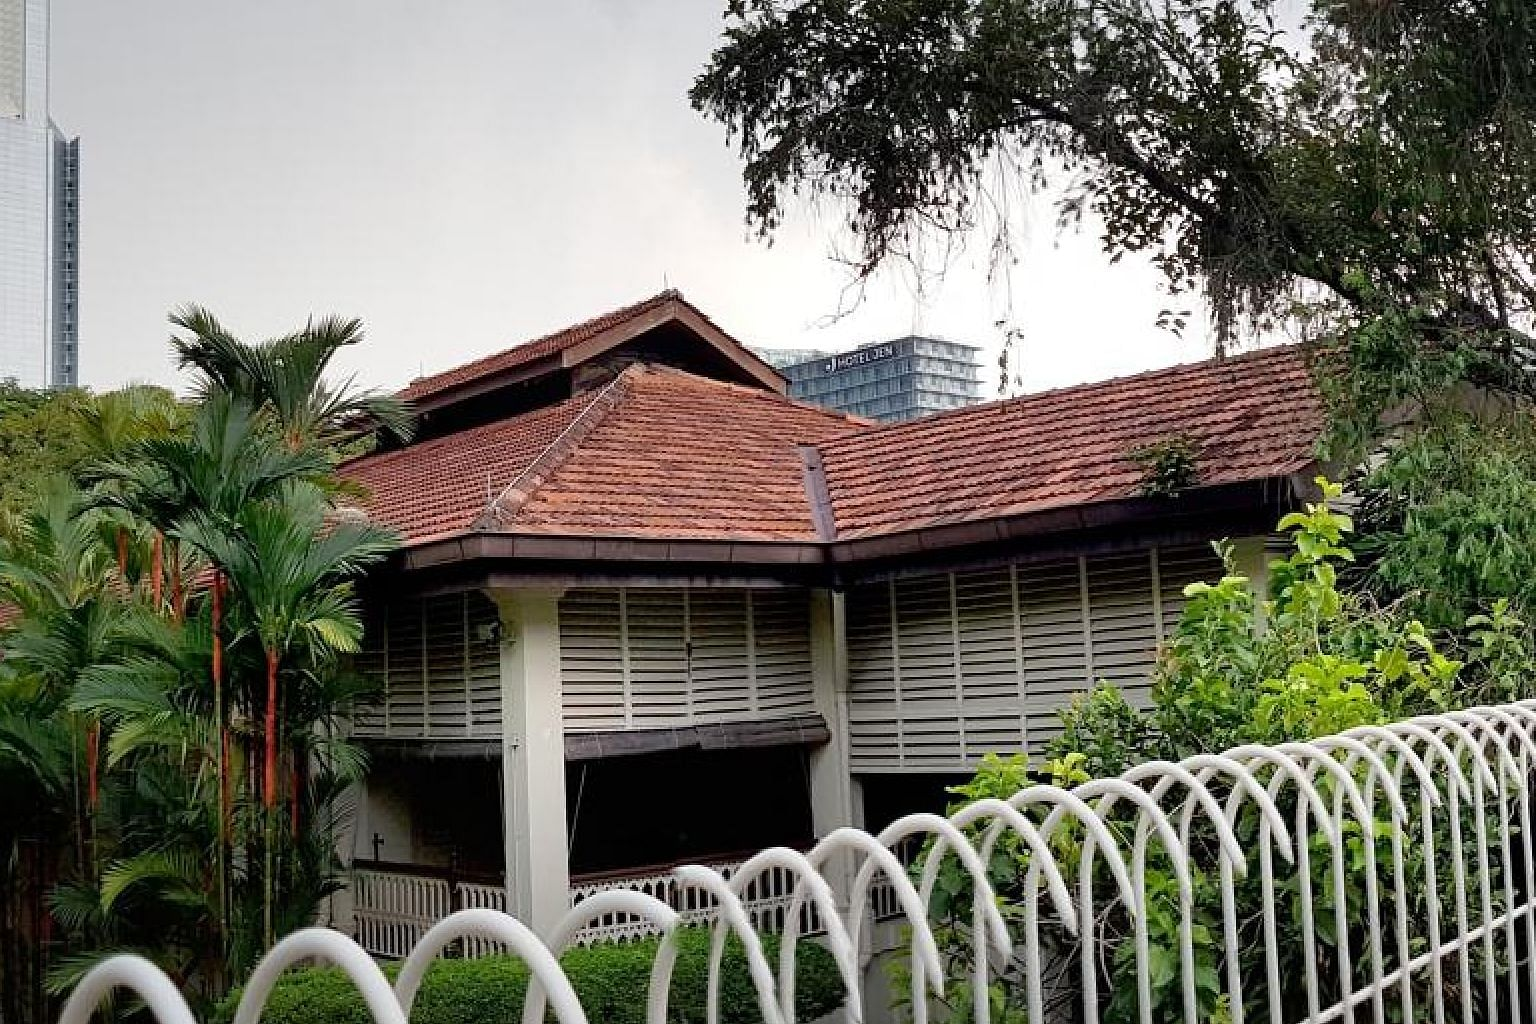 The 38, Oxley Road saga seems to have played right into the hands of Singapore's detractors looking for evidence to prove that only one family calls all the shots here.